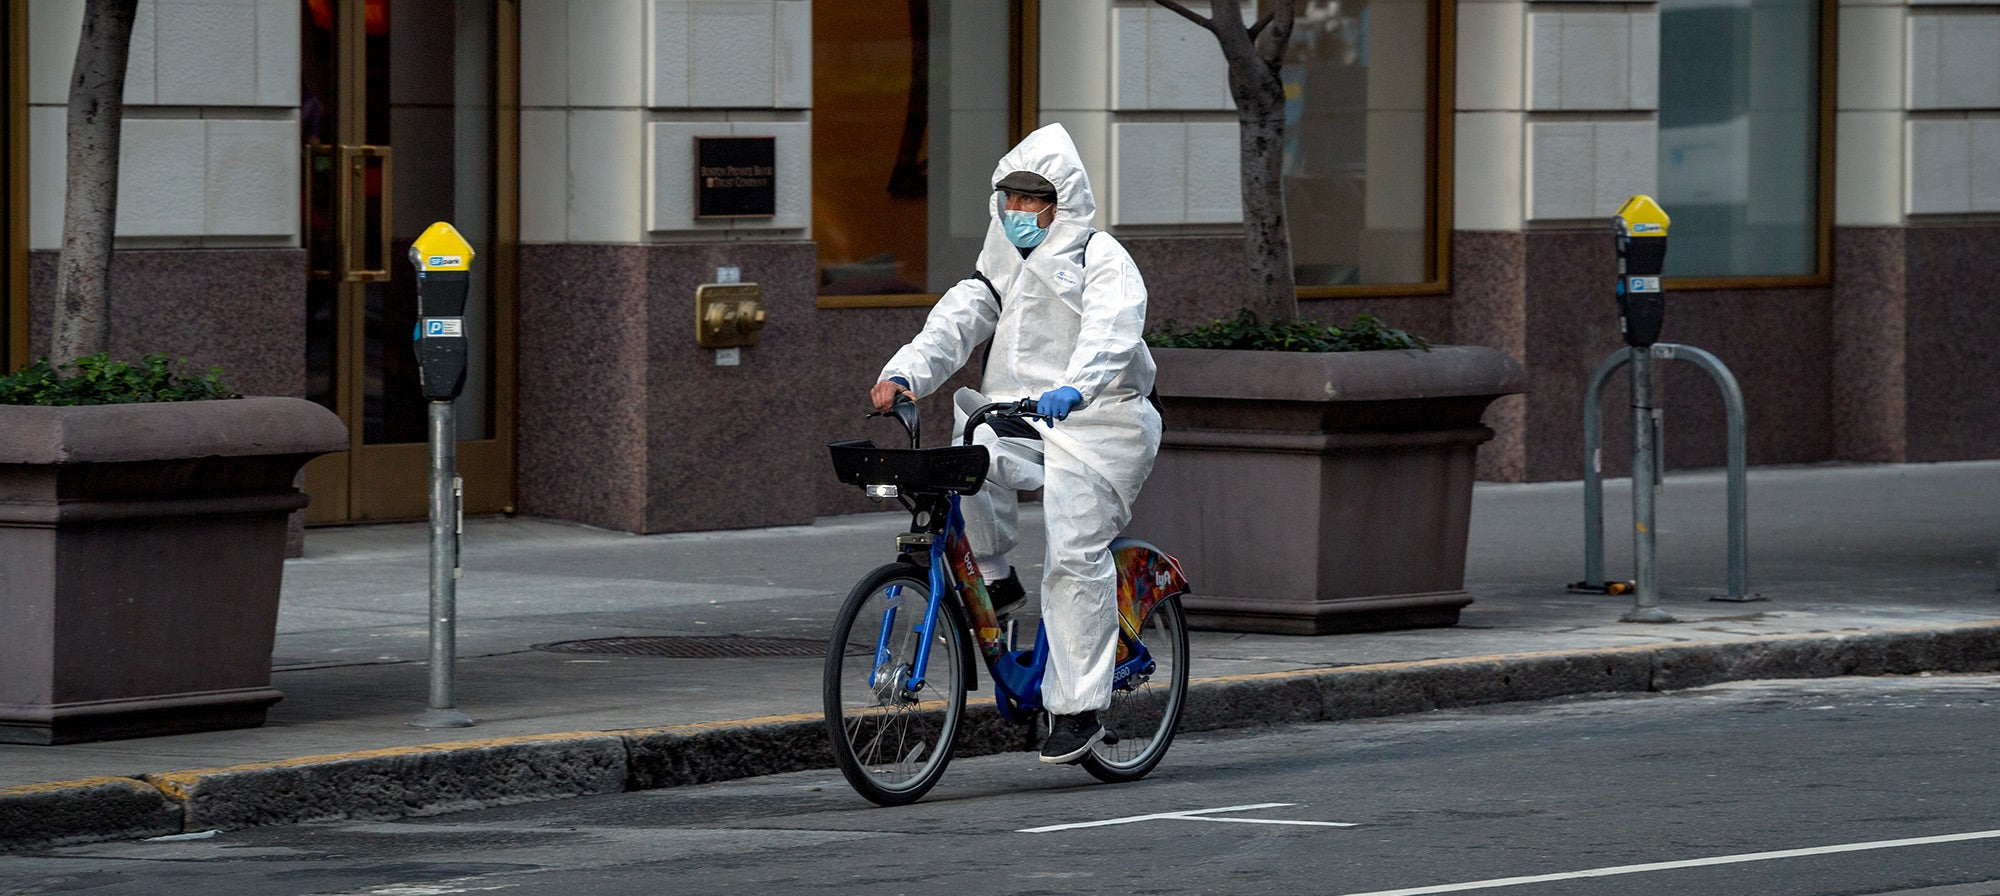 Covid-19 Crisis: A man wearing a protective suit while cycling